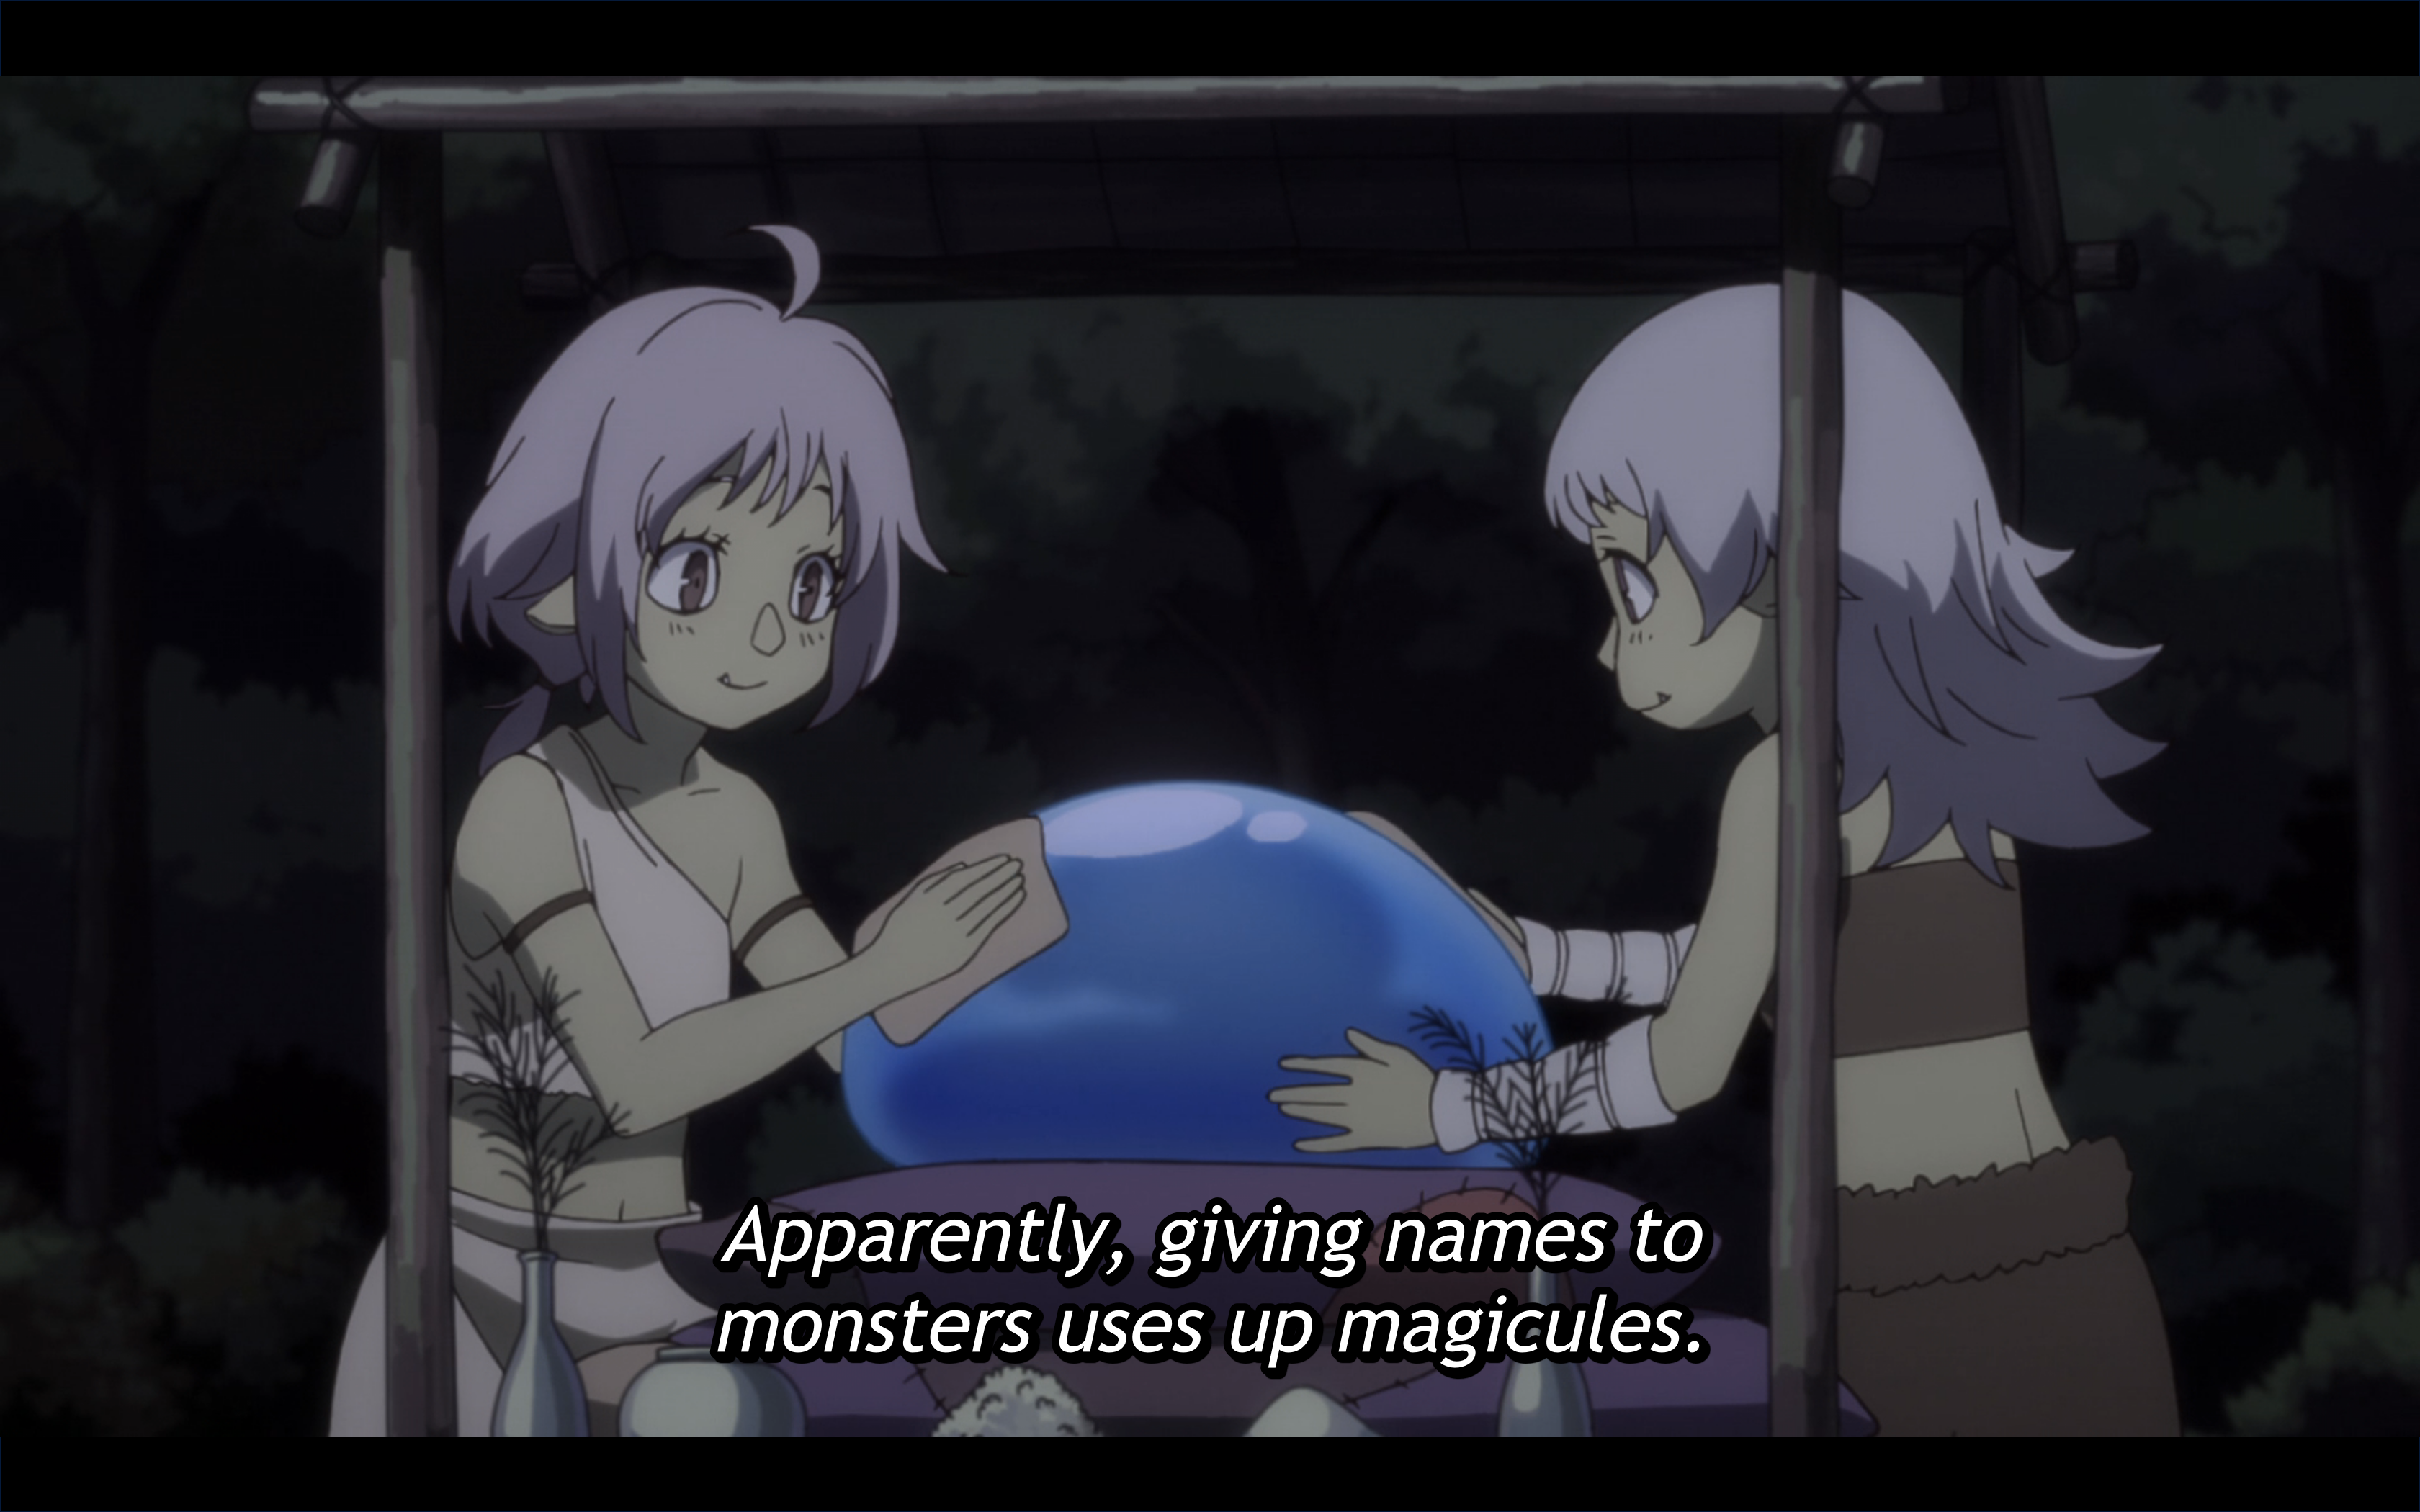 That Time I Got Reincarnated As A Slime - Episode 3 (Review